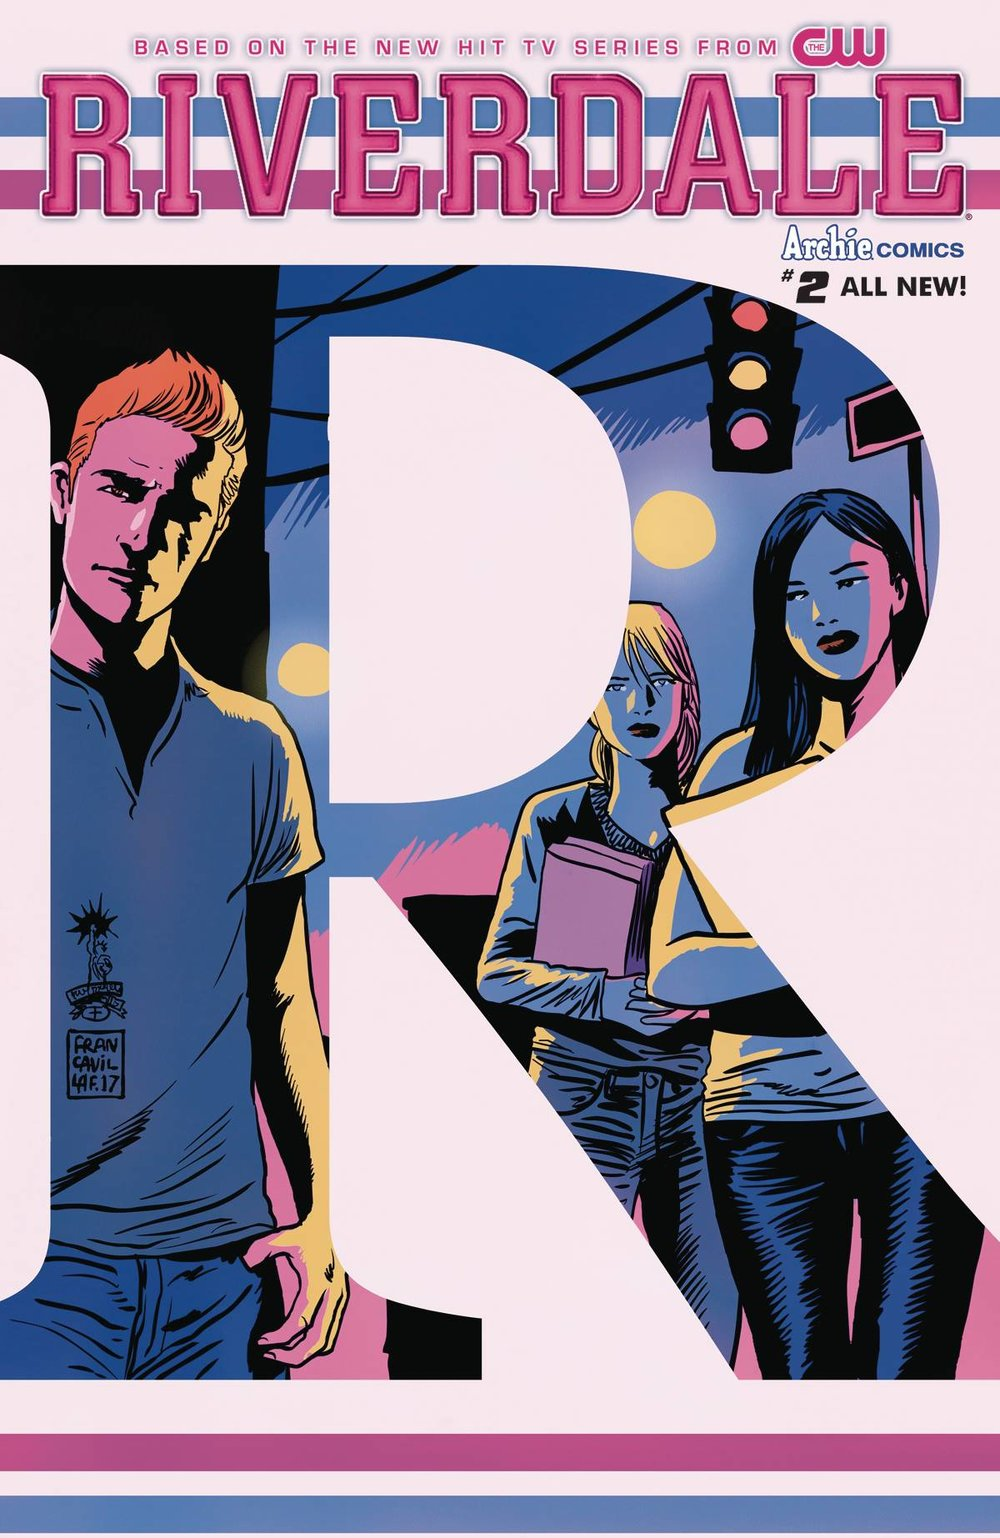 RIVERDALE (ONGOING) 2 CVR A REG FRANCAVILLA.jpg